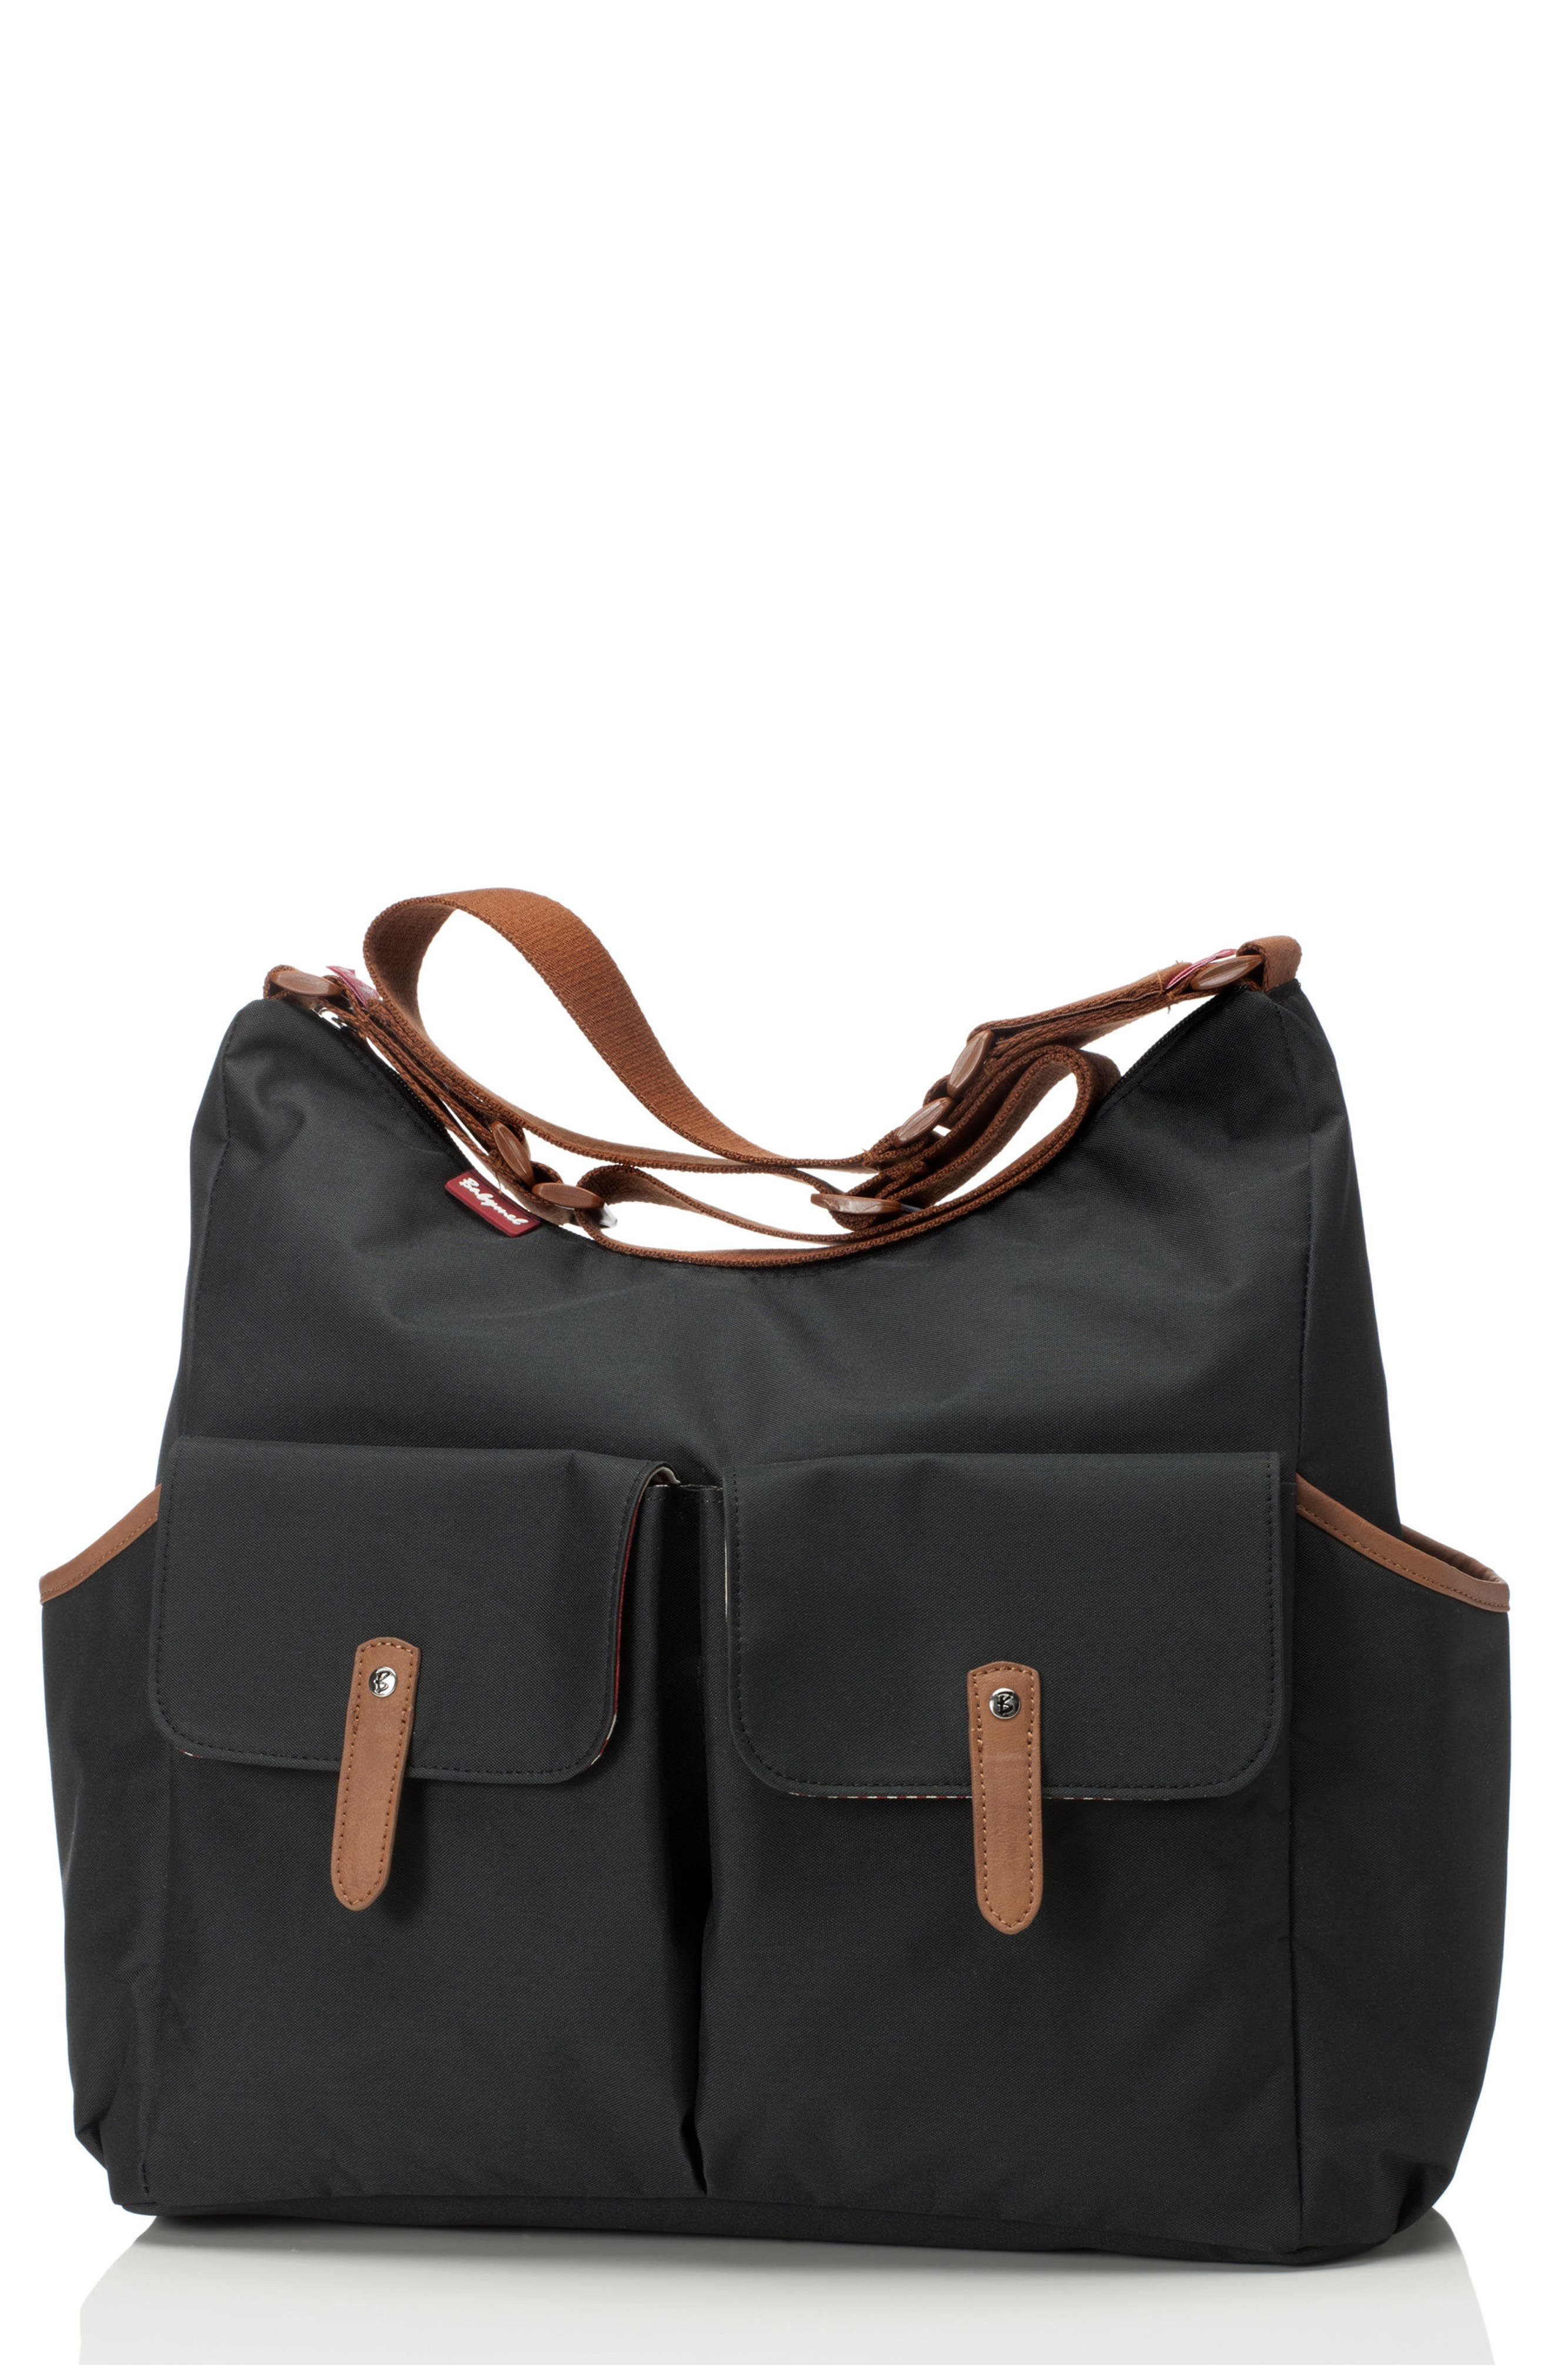 'Frankie' Diaper Bag,                         Main,                         color,